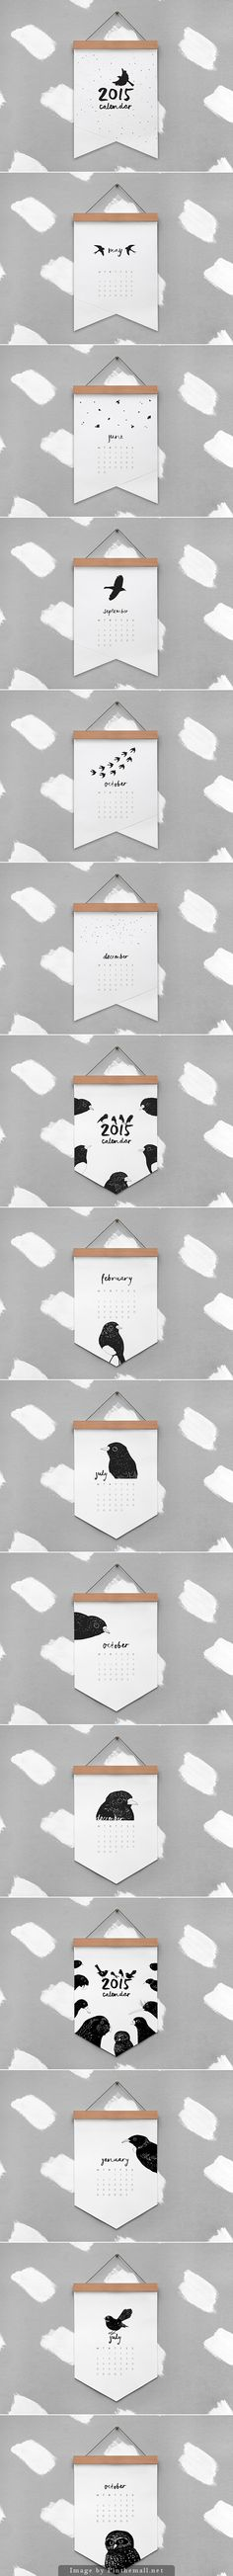 2015 Eco-Friendly Calendars by melissa boardman